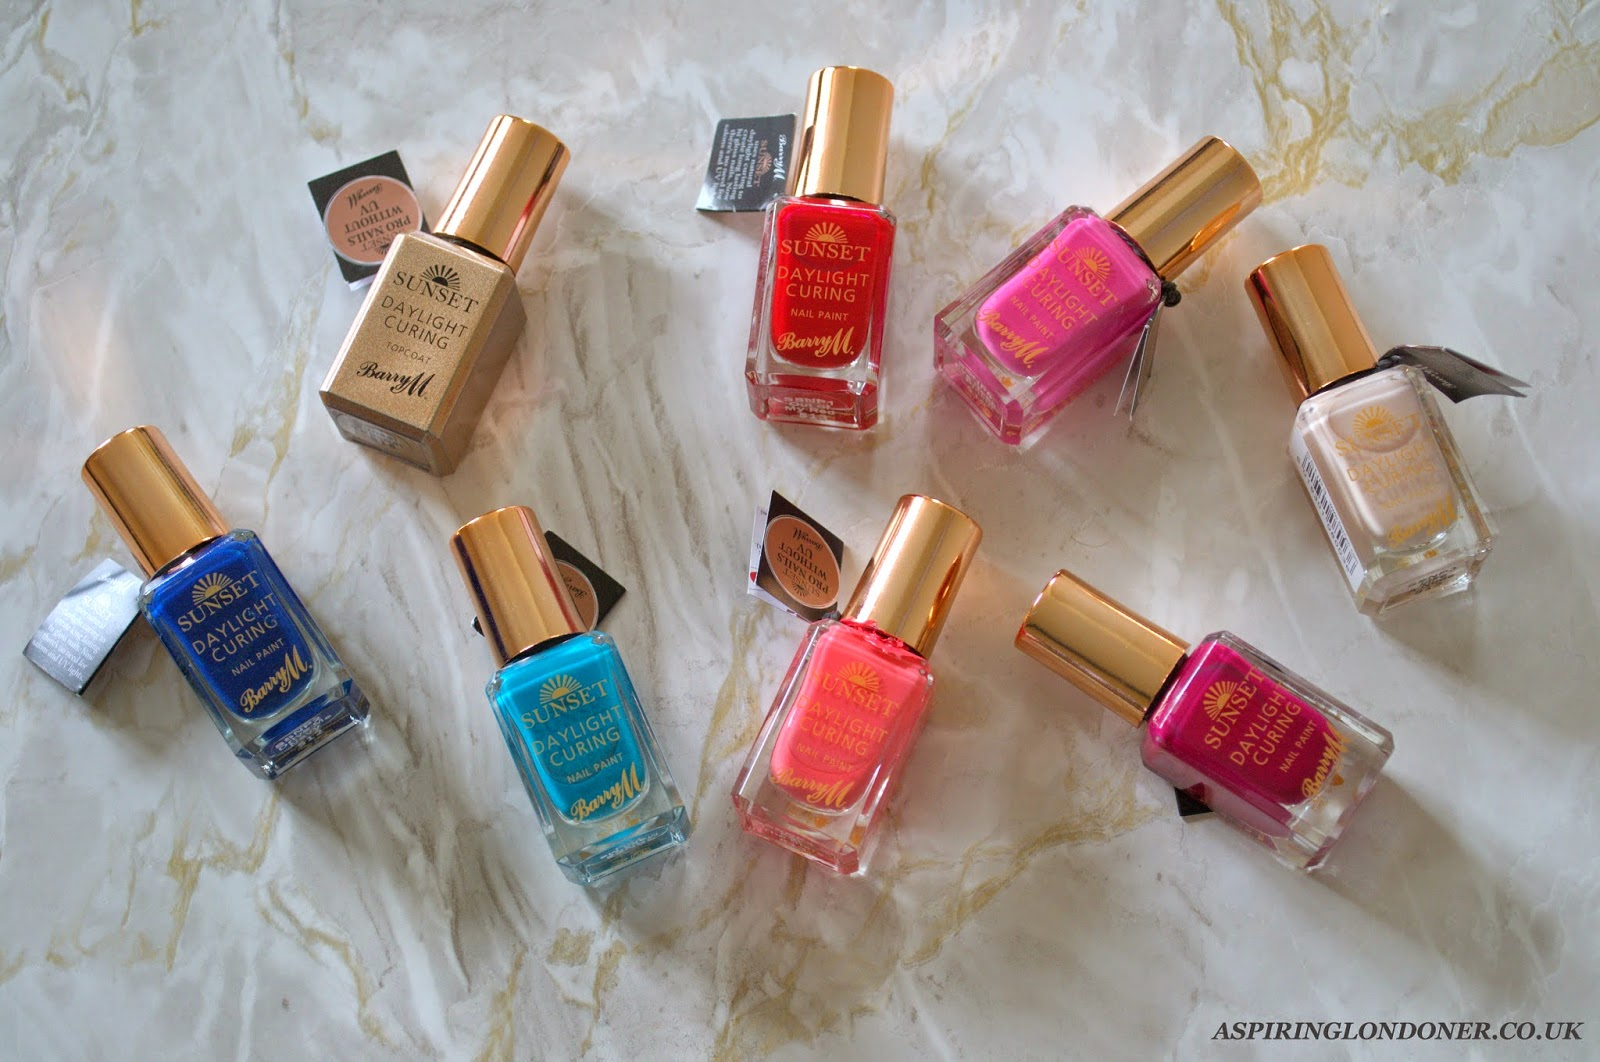 Barry M Sunset Daylight Curing Nail Polish Review - Aspiring Londoner